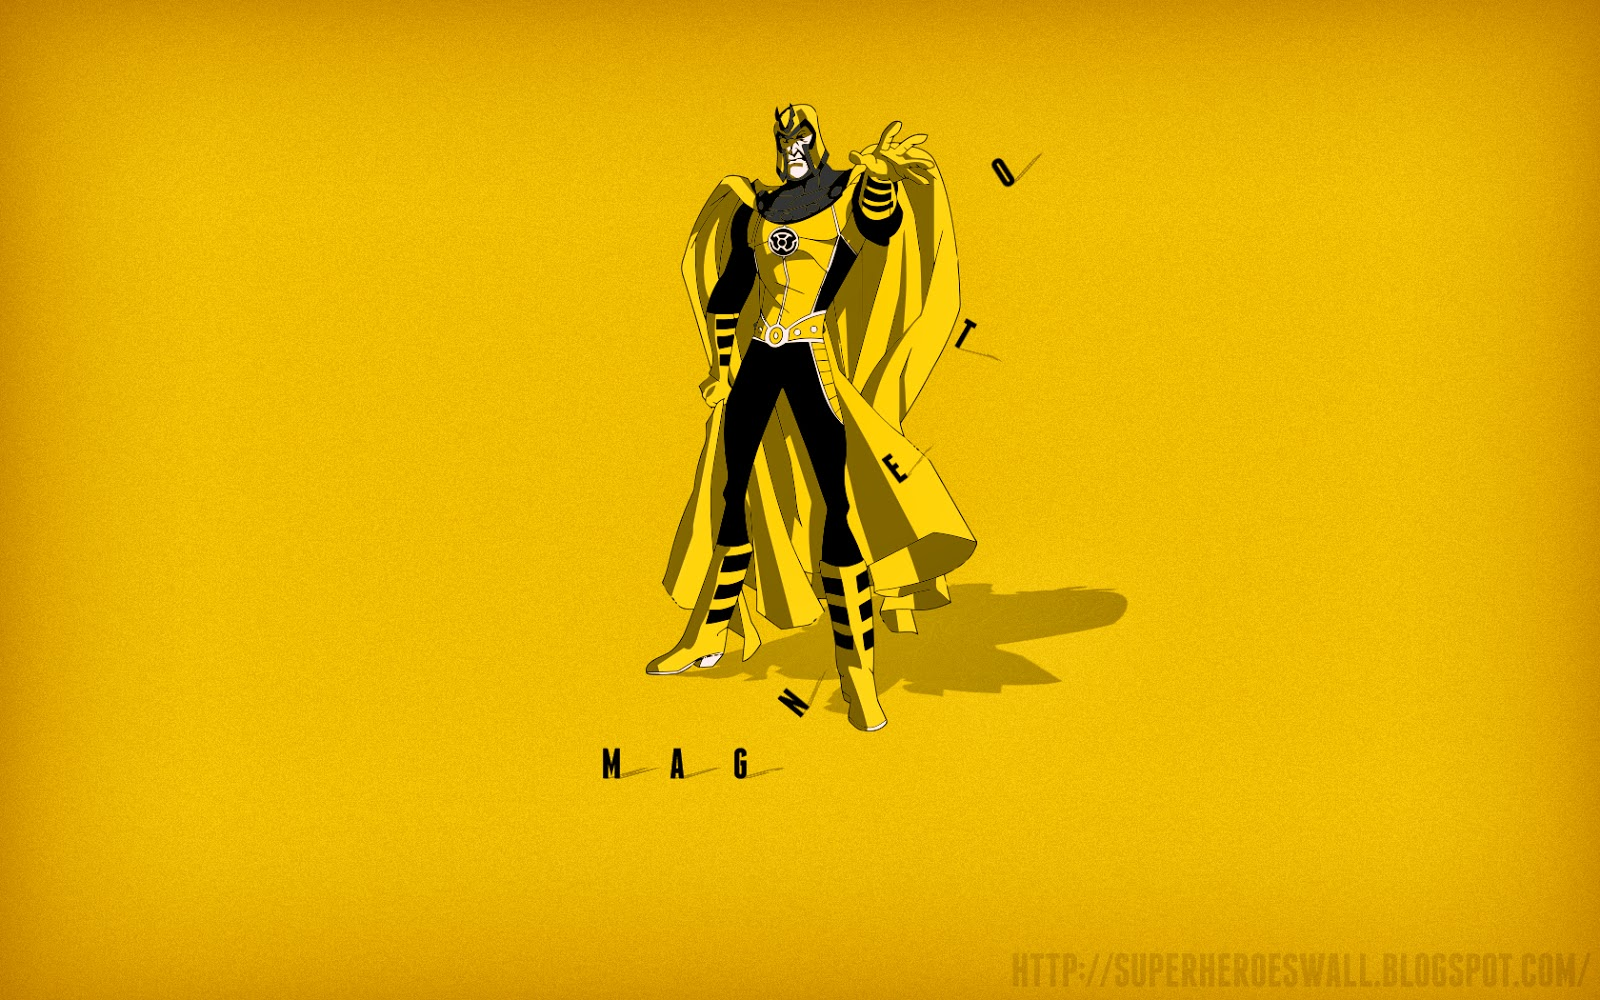 Super heroes wallpaper magneto x man hd wallpaper super villain super heroes wallpaper voltagebd Choice Image